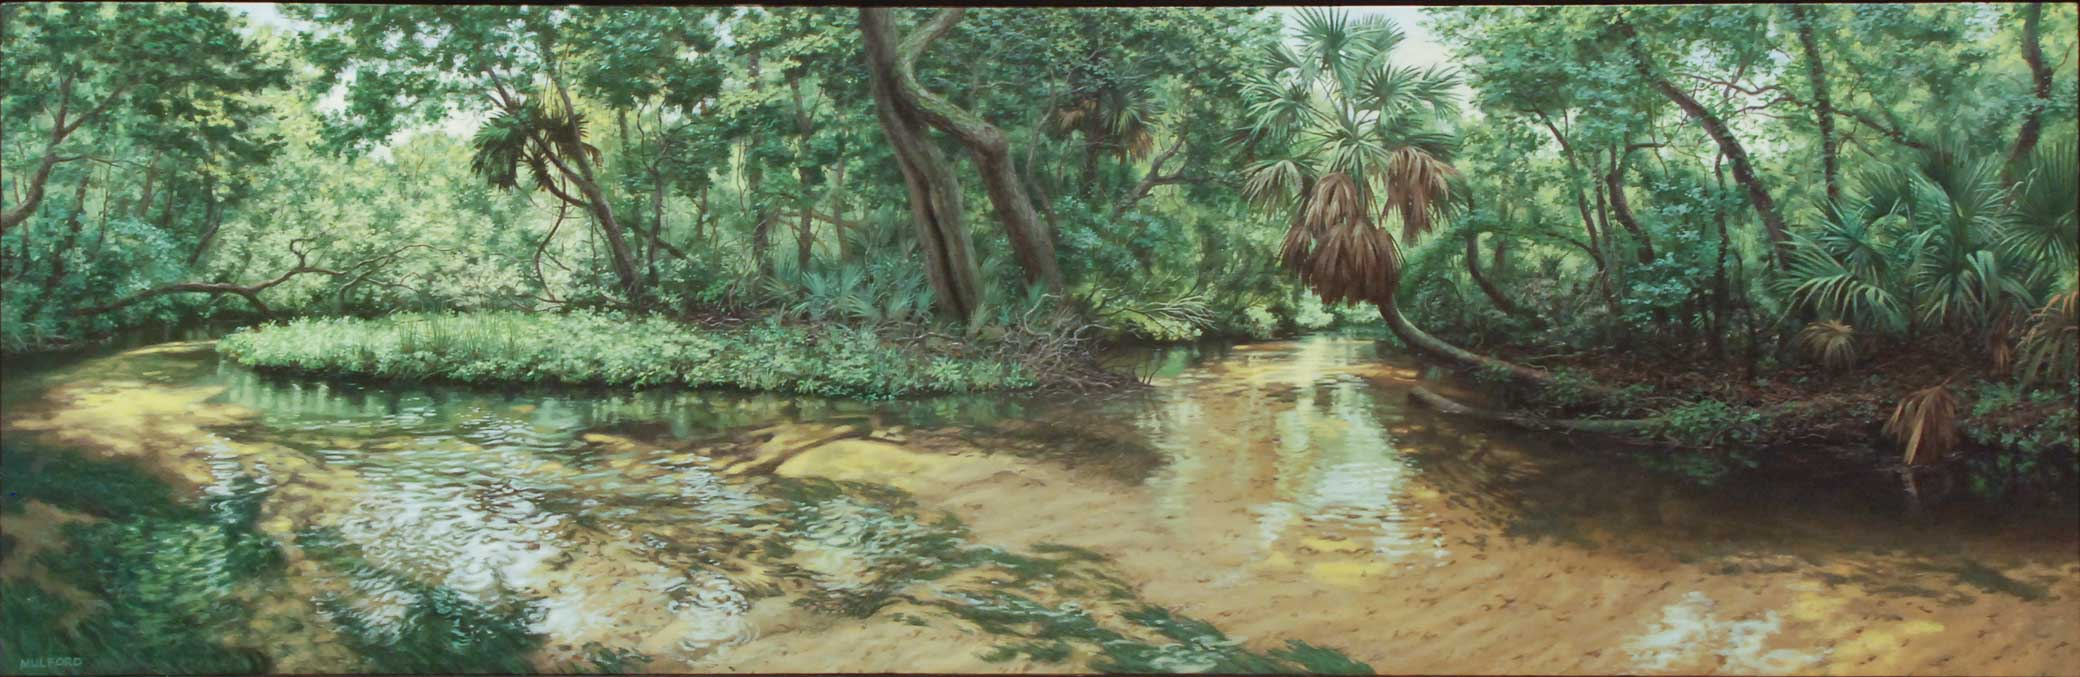 Hansen Mulford, Woods near Jupiter Springs, 1990, Oil on linen, Polk Museum of Art Permanent Collection 1990.89, Gift of the friends of Selma and Lester Wishnatzki in honor of their 50th wedding anniversary